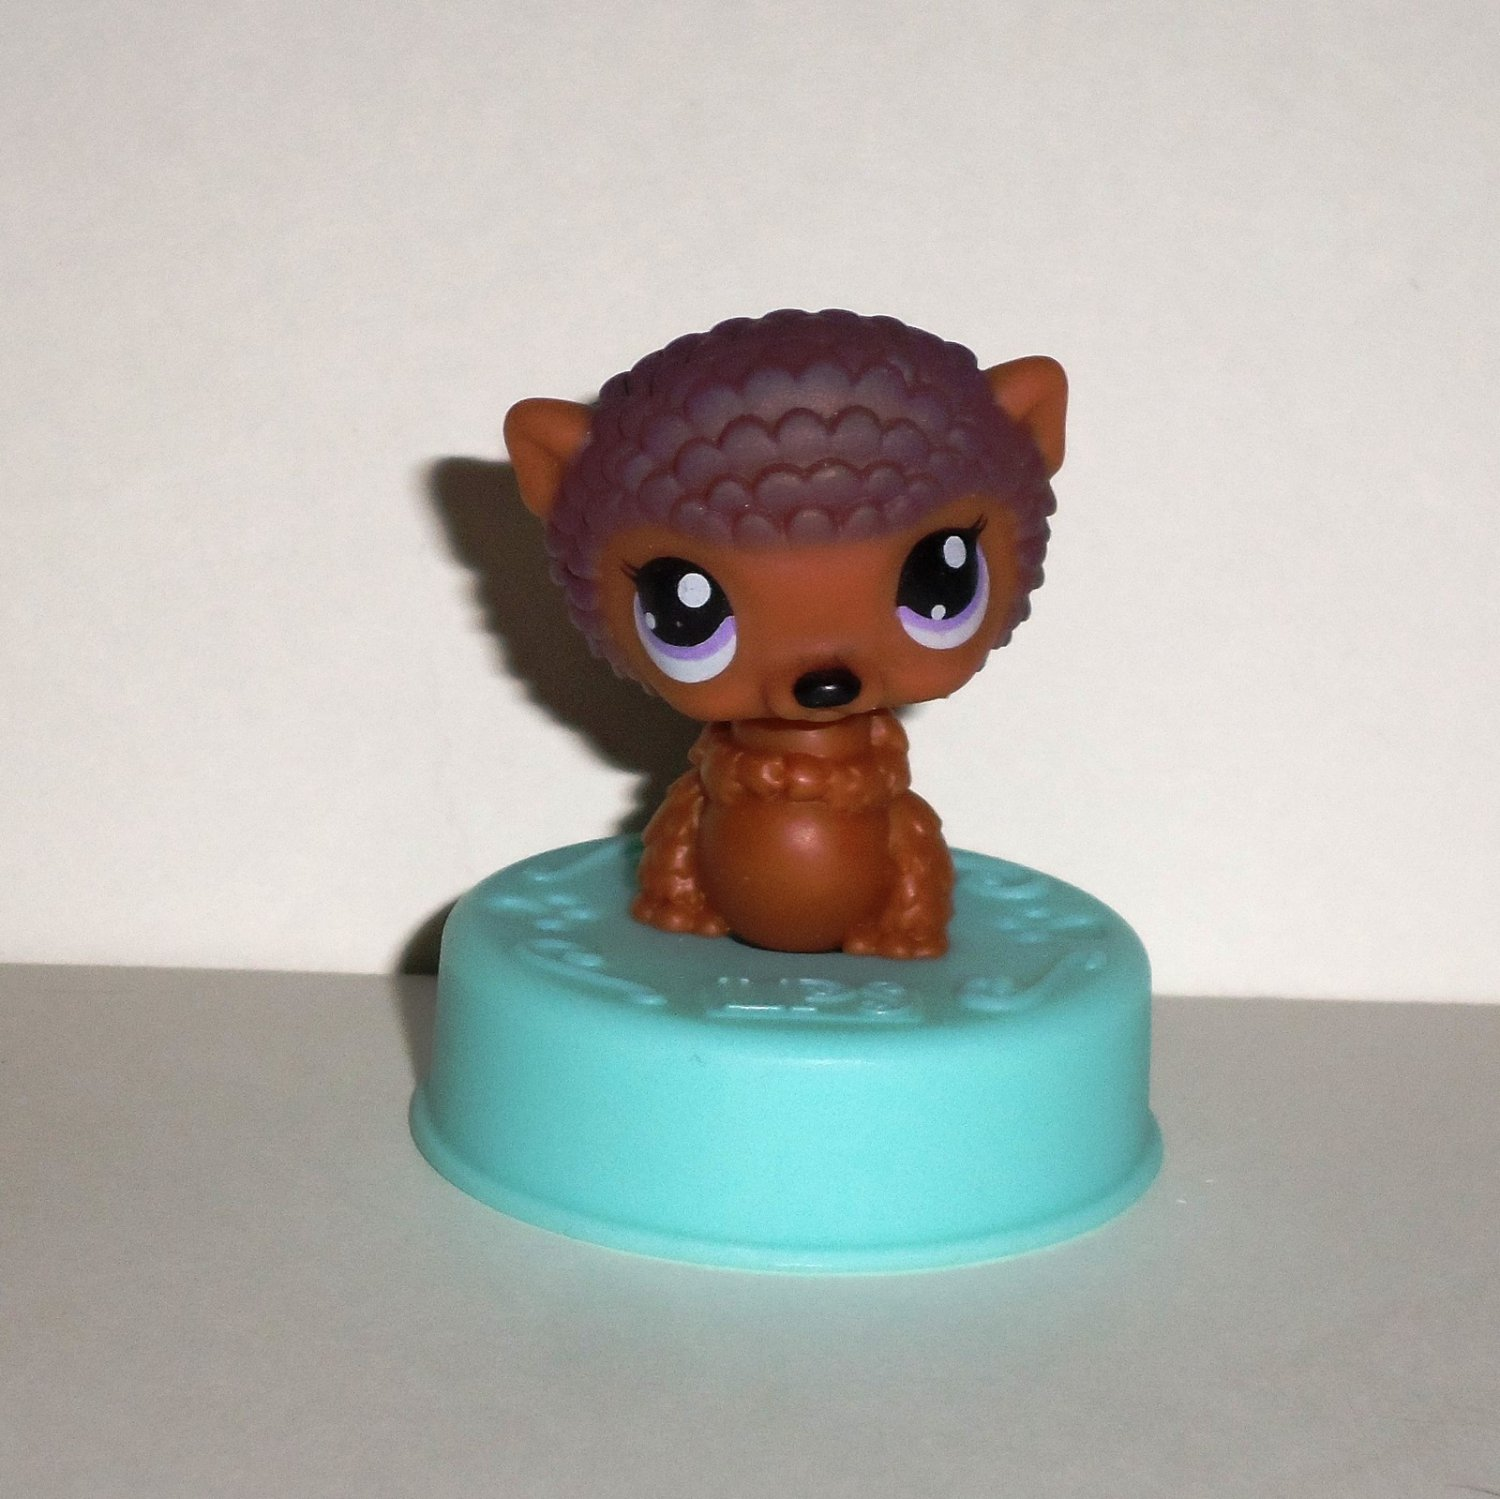 McDonald's 2006 Littlest Pet Shop Brown Hedgehog Figure Happy Meal Toy Hasbro Loose Used